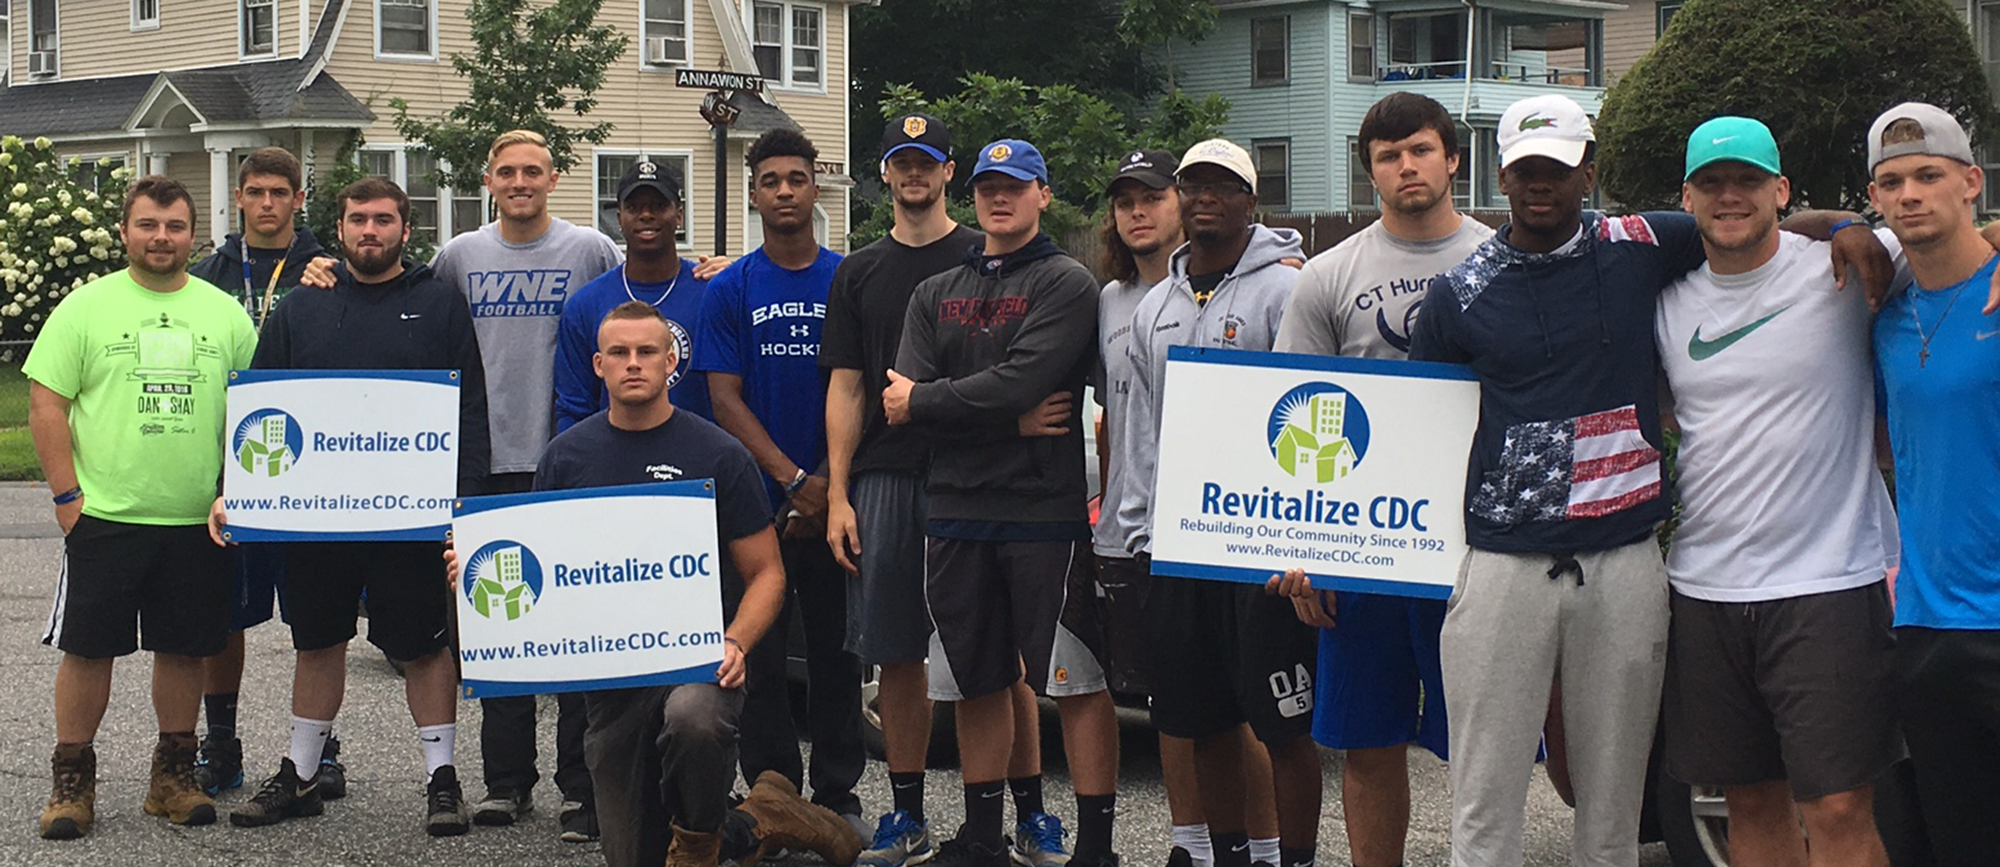 Western New England Football Volunteers with Revitalize CDC For 12th Consecutive Year